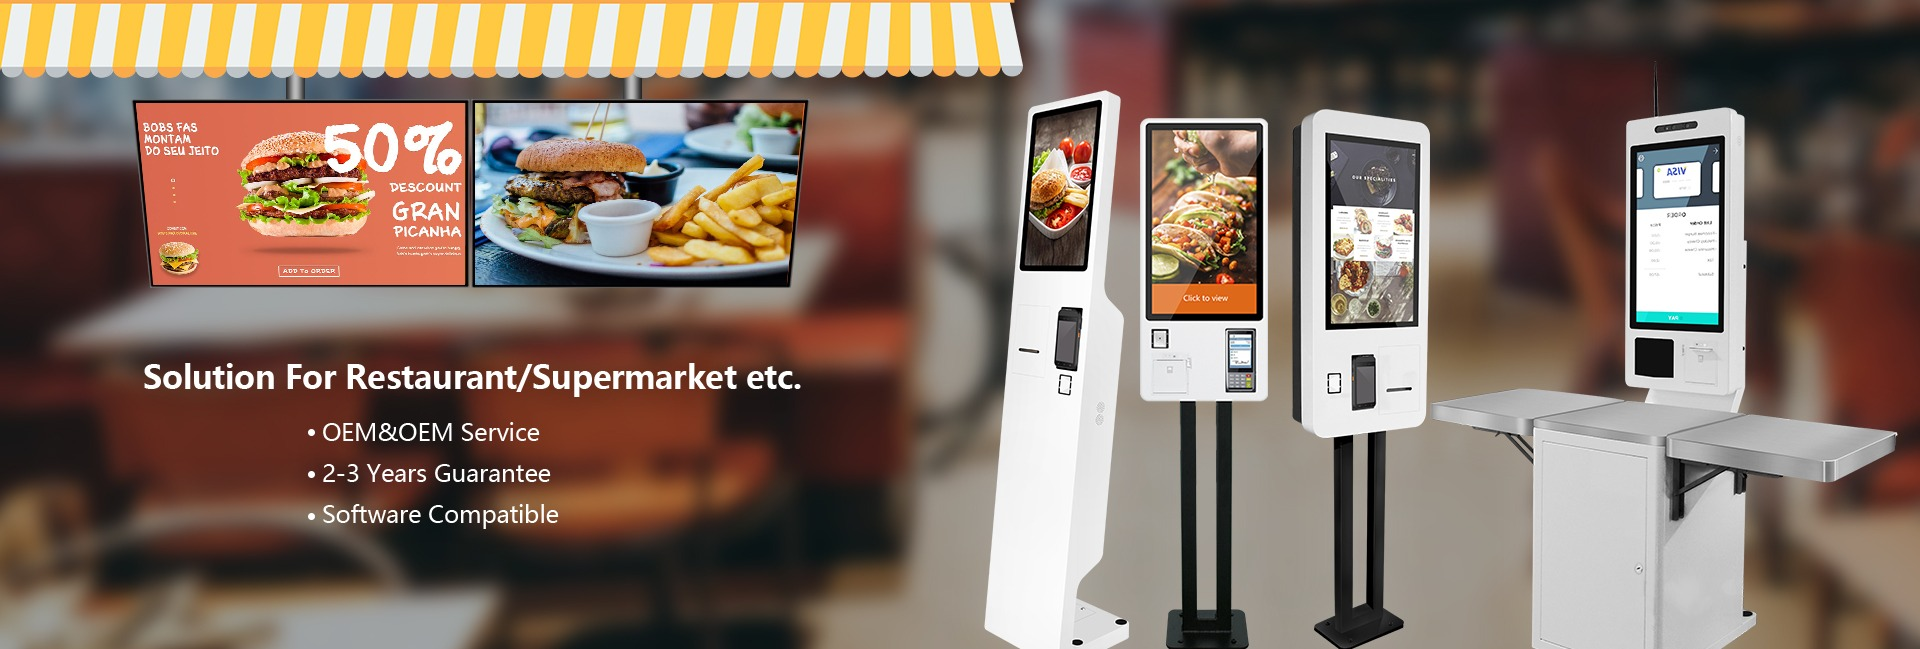 kiosk retail software Digital Screens and self order kiosk